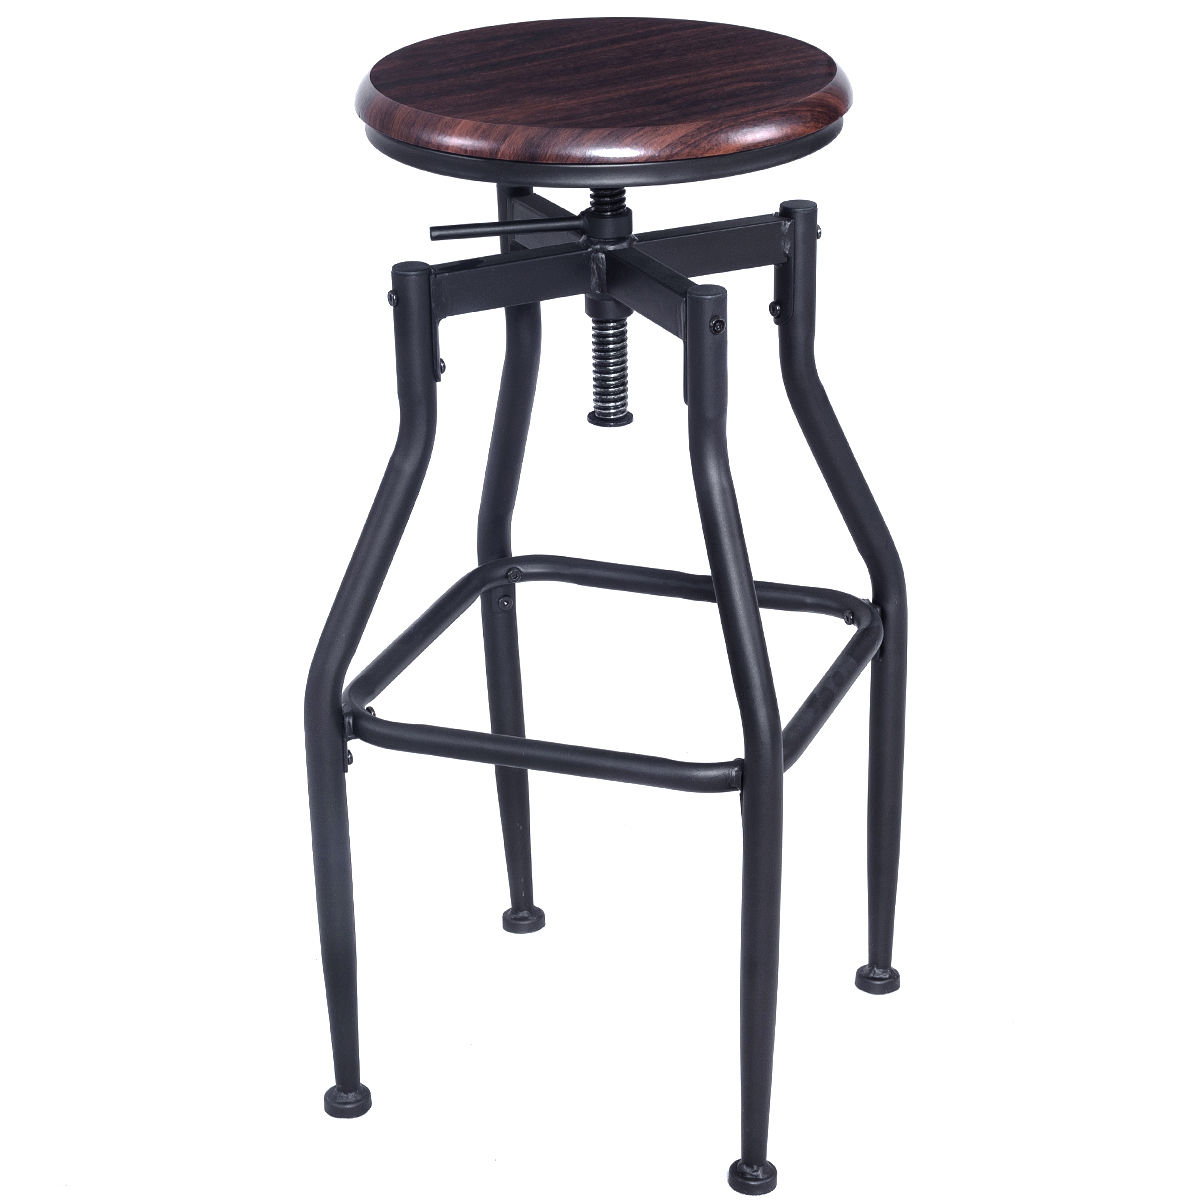 Giantex New Vintage Bar Stool Metal Design Wood Top Height Adjustable Swivel Bar Chair Industrial Style Bar Furniture HW52162 vintage metal bar chair bar chair lift 100% wooden bar chair the pulley of the bar chair wood stool metal furniture